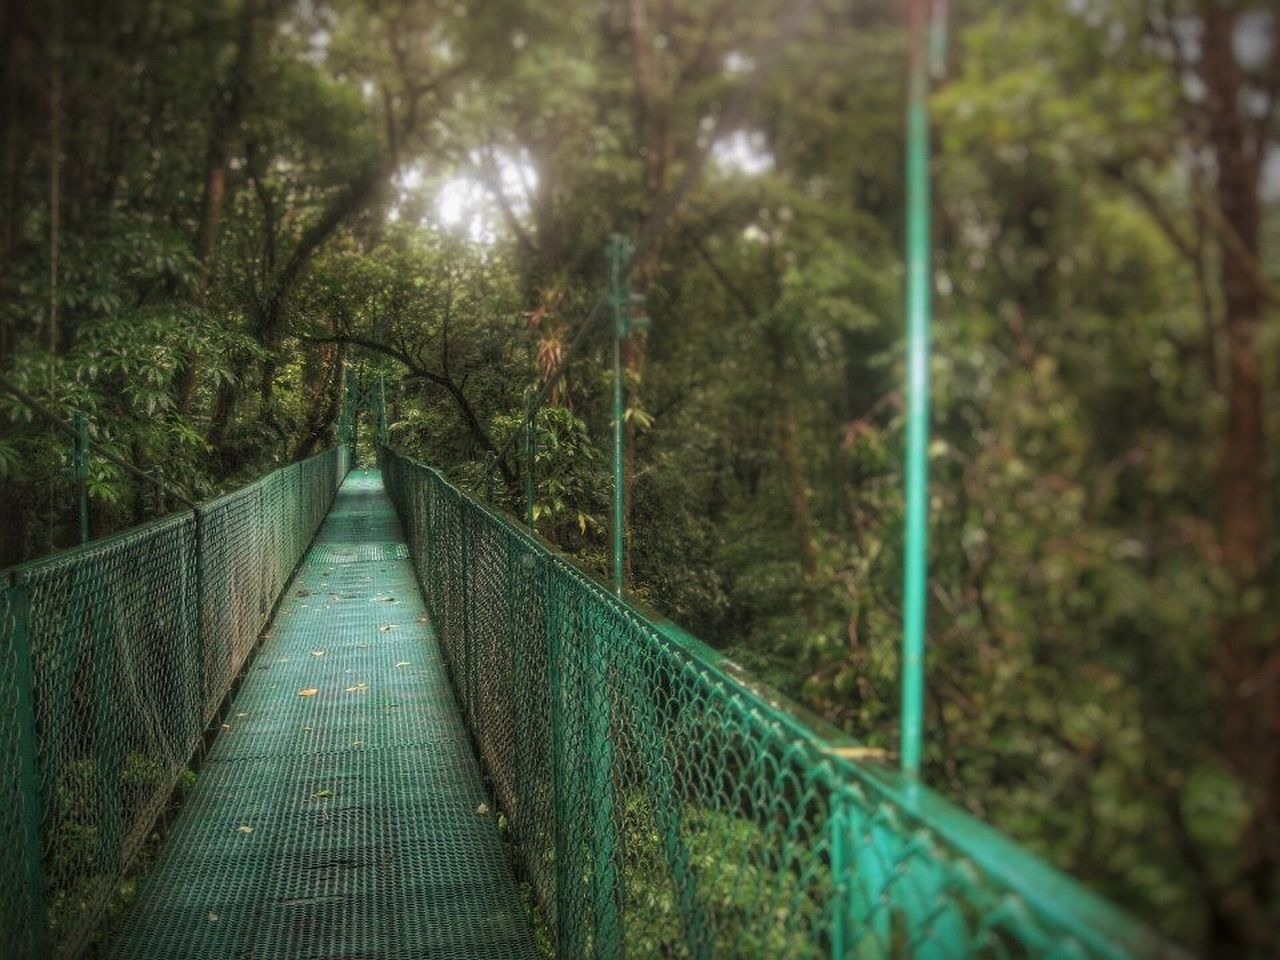 railing, tree, the way forward, nature, bridge - man made structure, growth, outdoors, no people, day, beauty in nature, footbridge